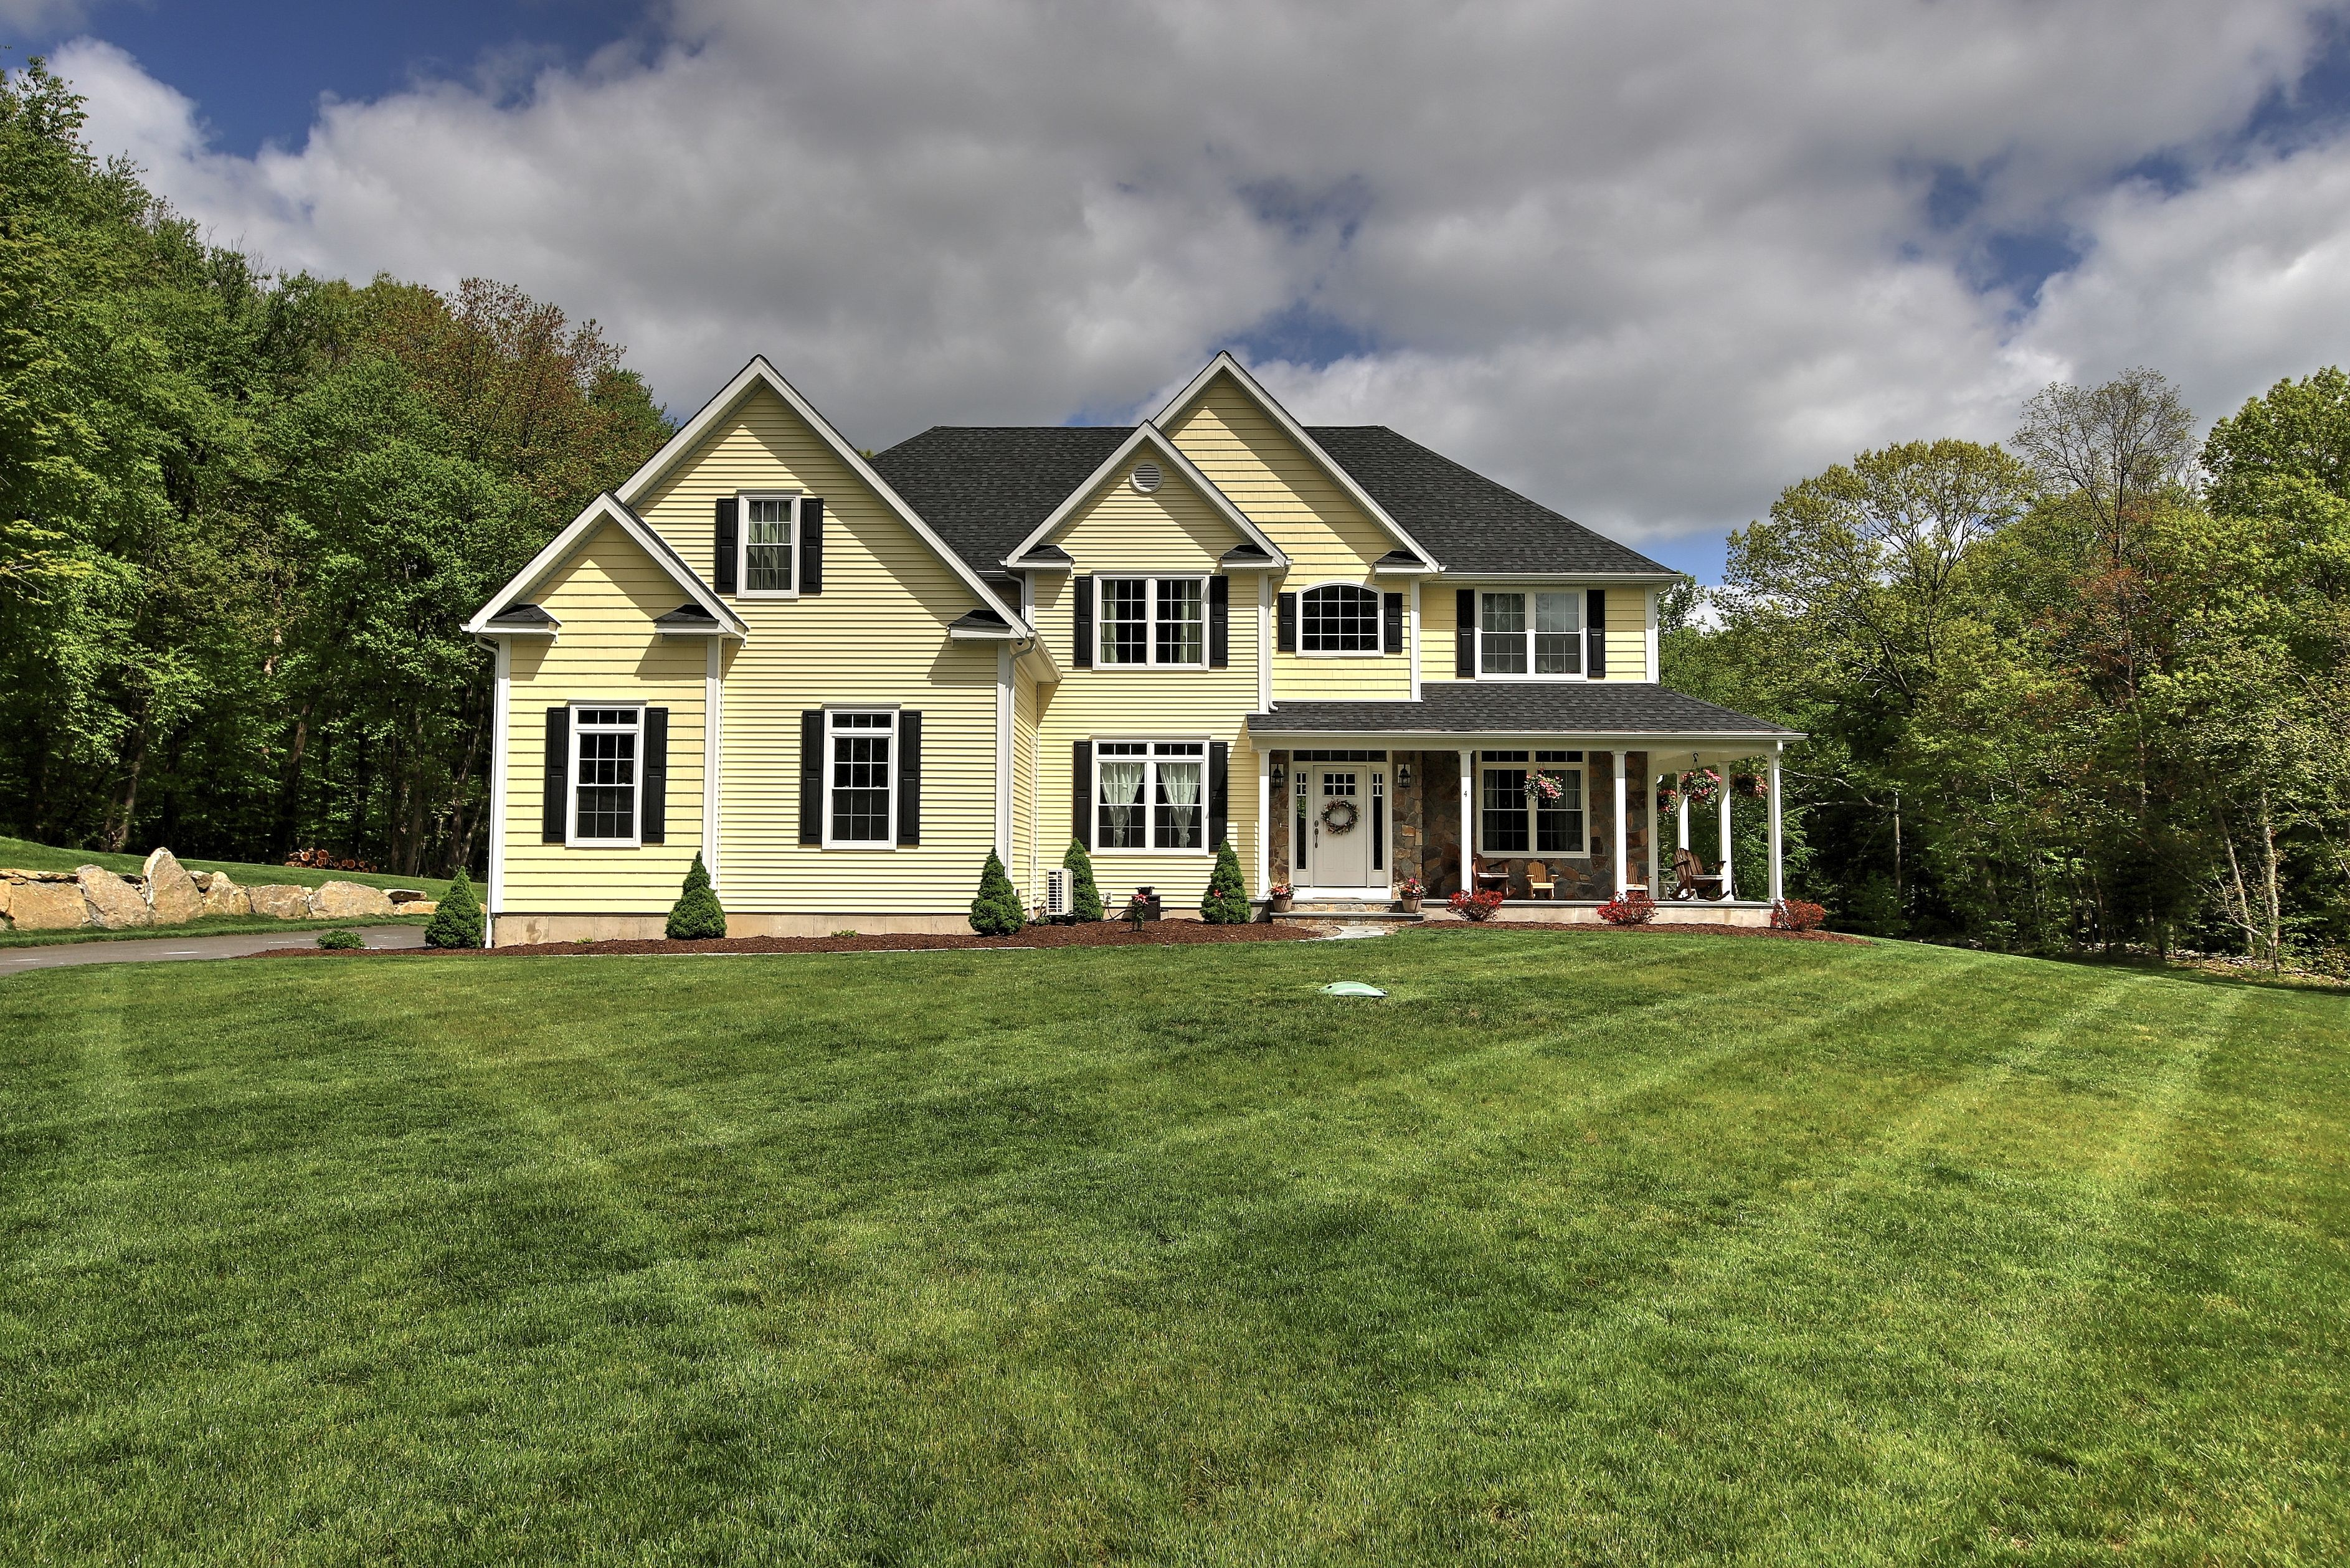 3300 sq ft. colonial house remodel